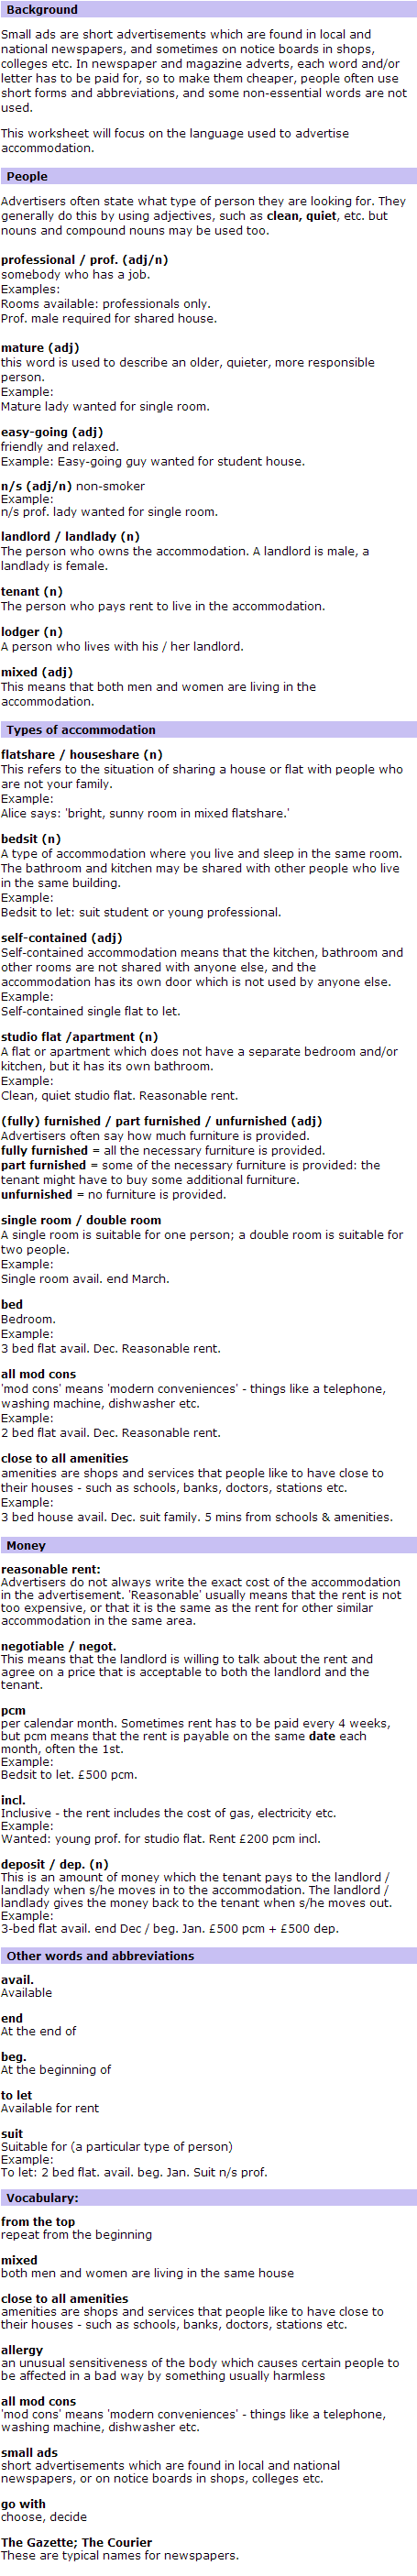 BBC World Service   Learning English   The Flatmates   Language Point 77(3)